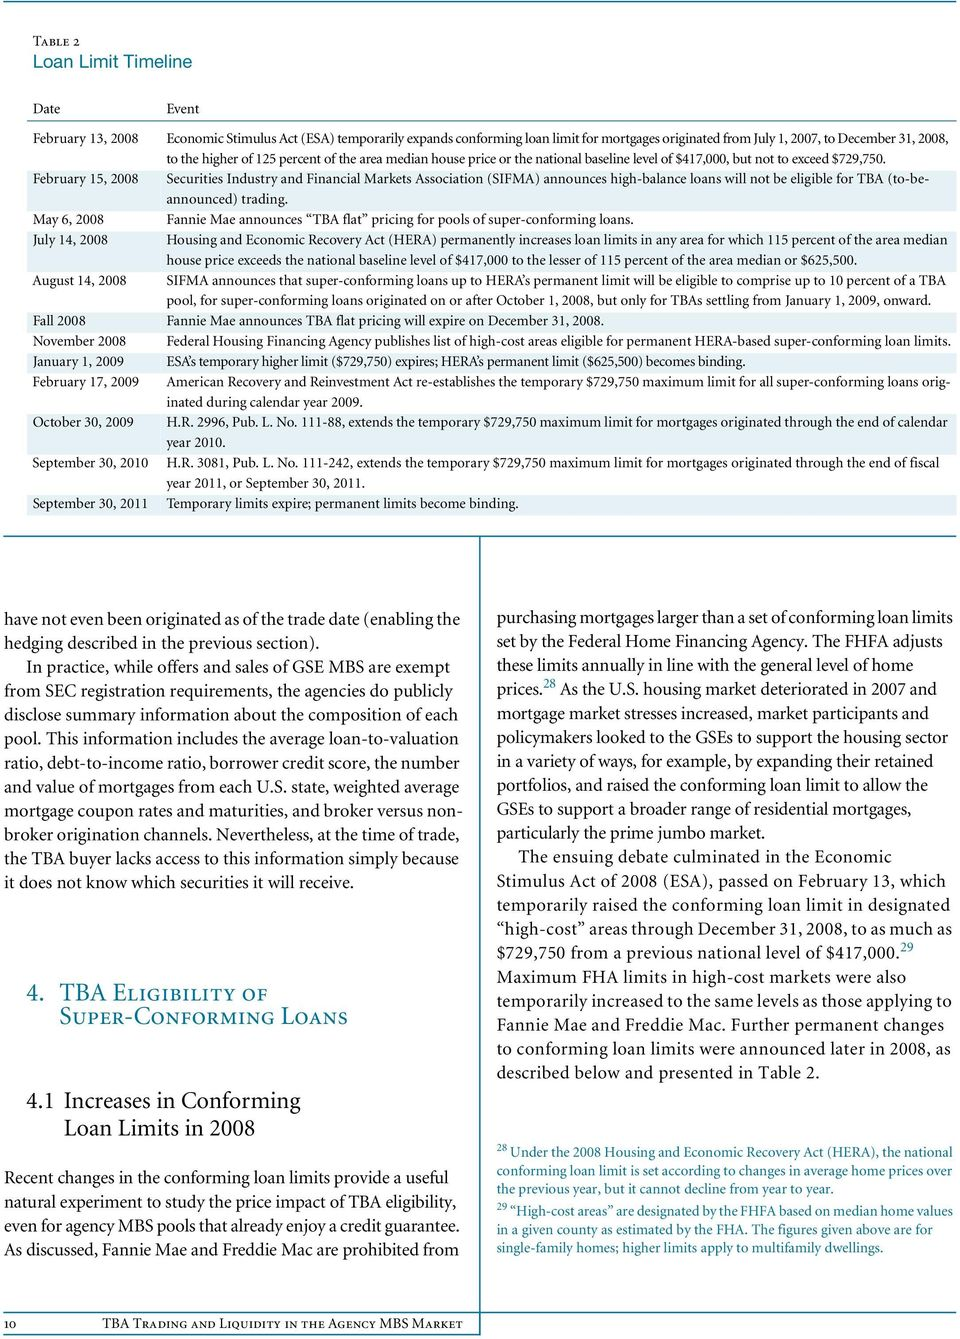 February 15, 2008 Securities Industry and Financial Markets Association (SIFMA) announces high-balance loans will not be eligible for TBA (to-beannounced) trading.